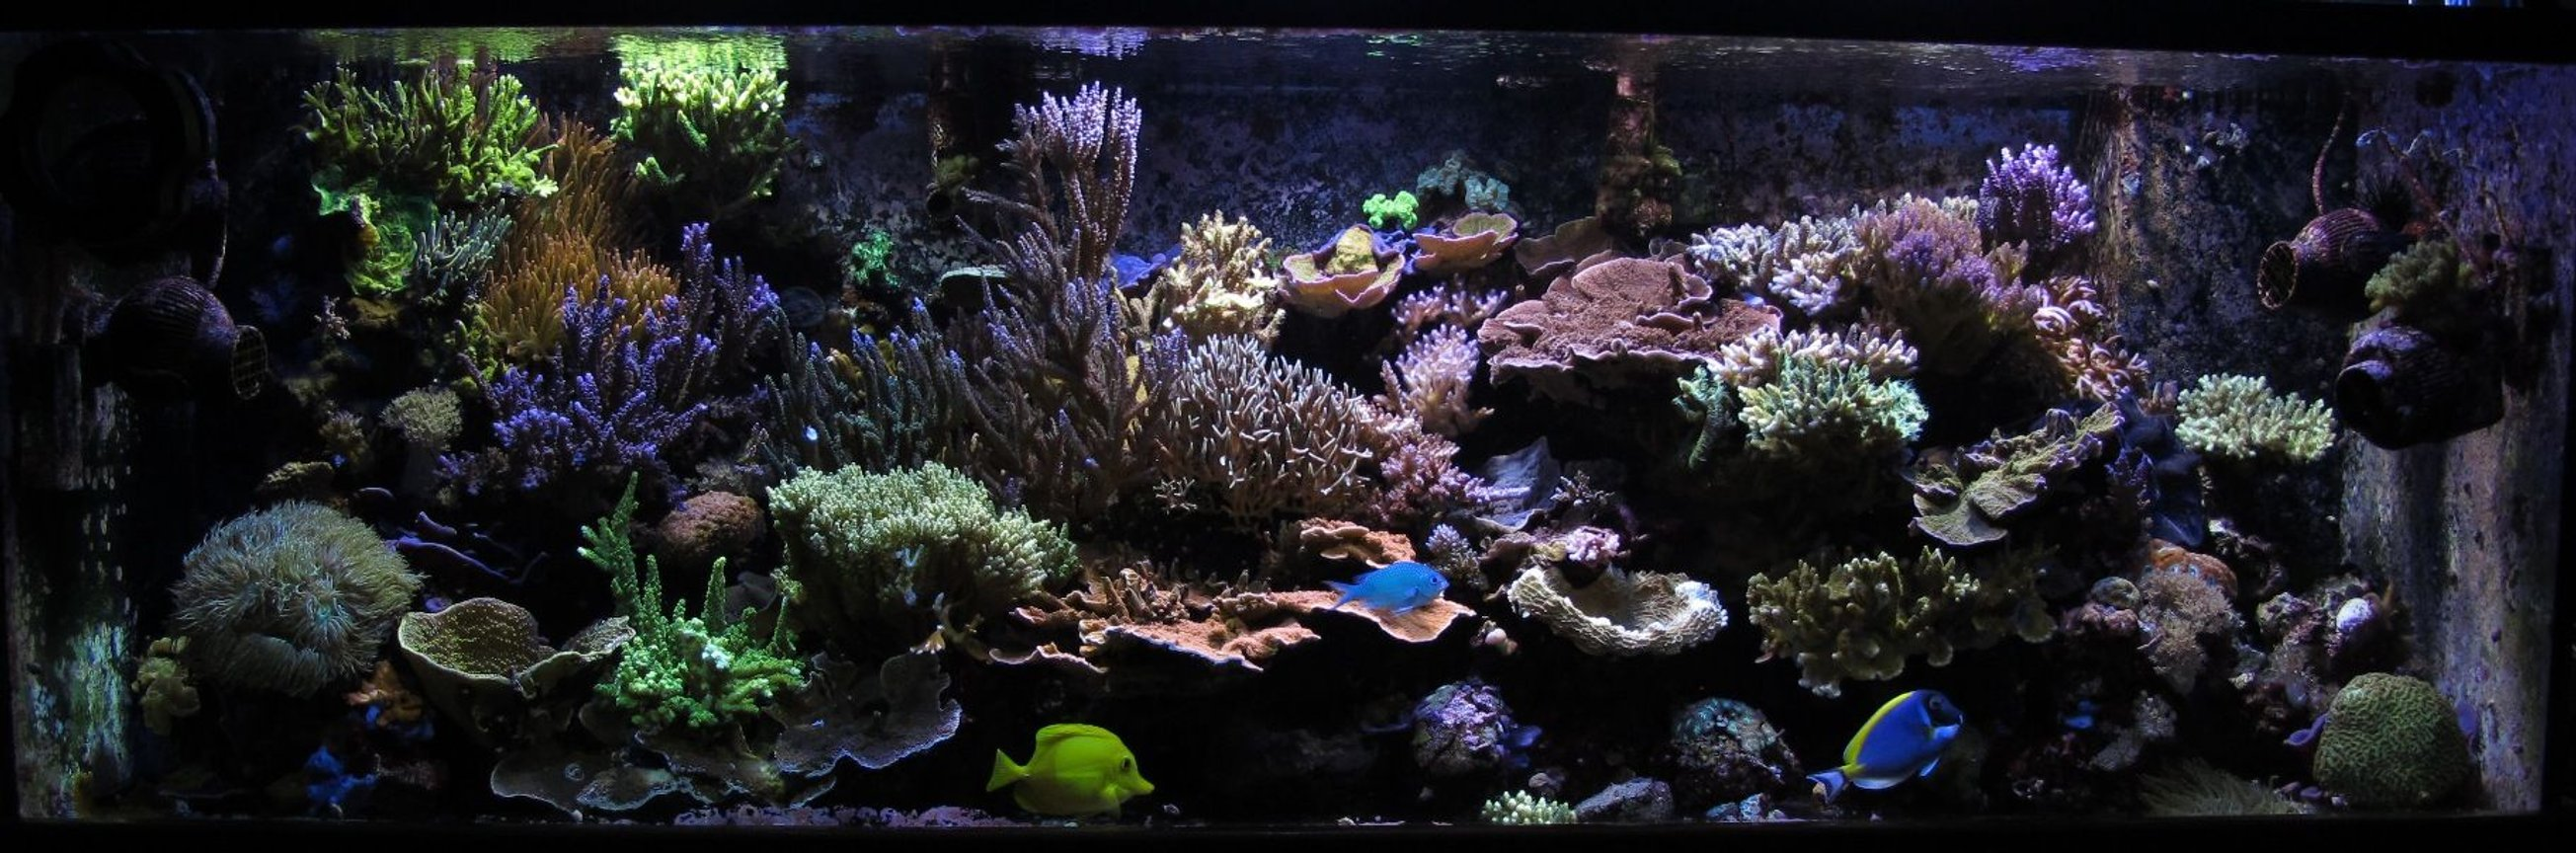 180 gallons reef tank (mostly live coral and fish) - 180 Gallon Las Vegas Reef Tank